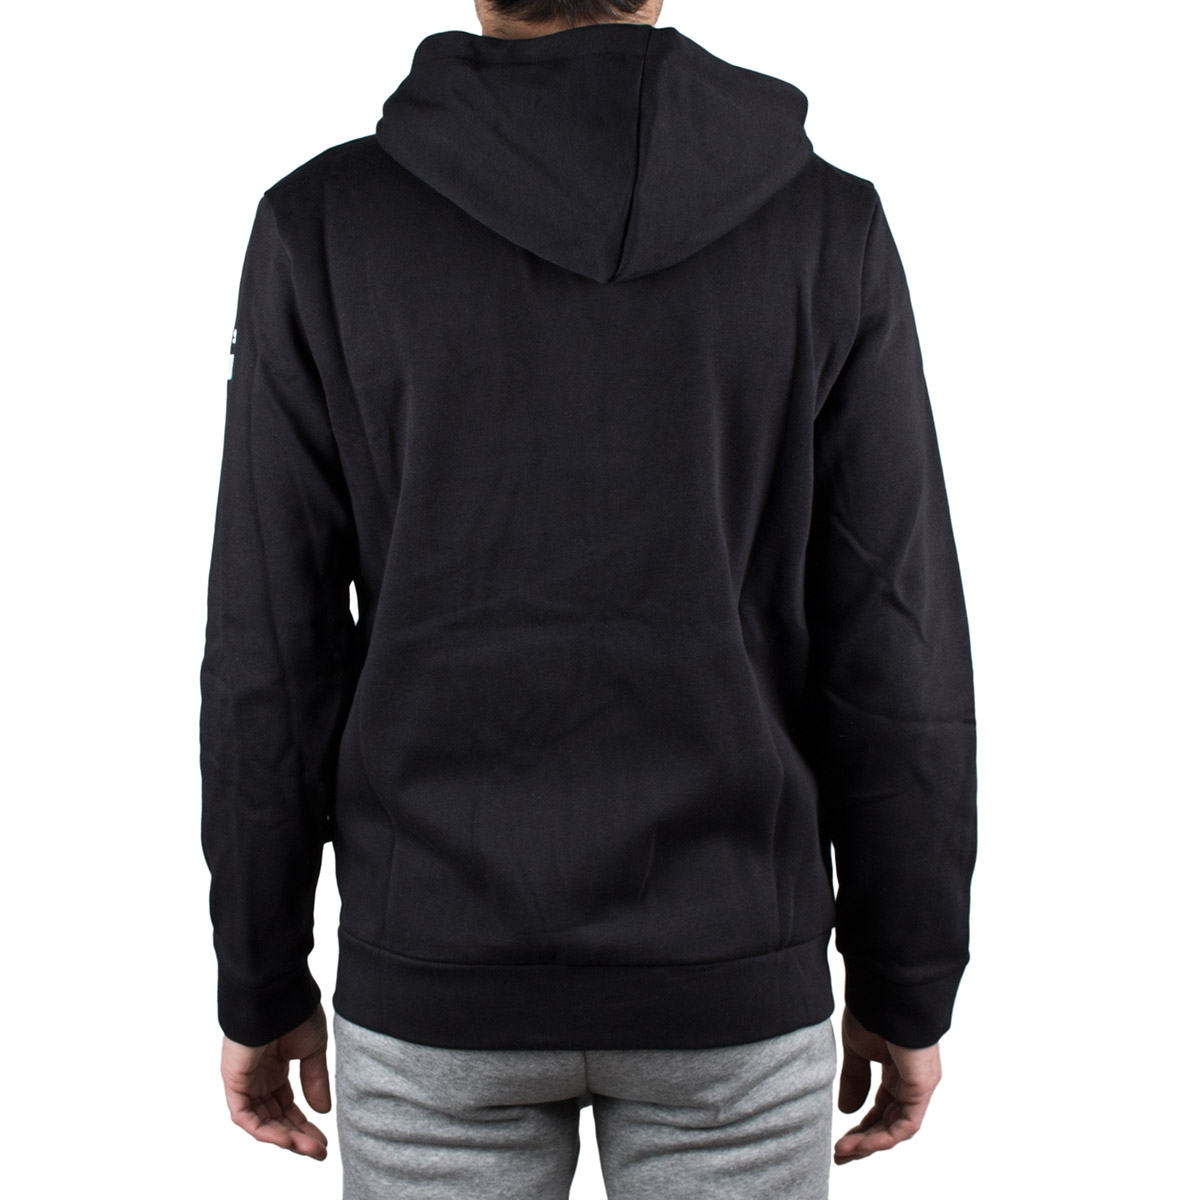 Puma Chaqueta con Capucha Amplified Hooded Jacket FL Puma Black Negro Hombre